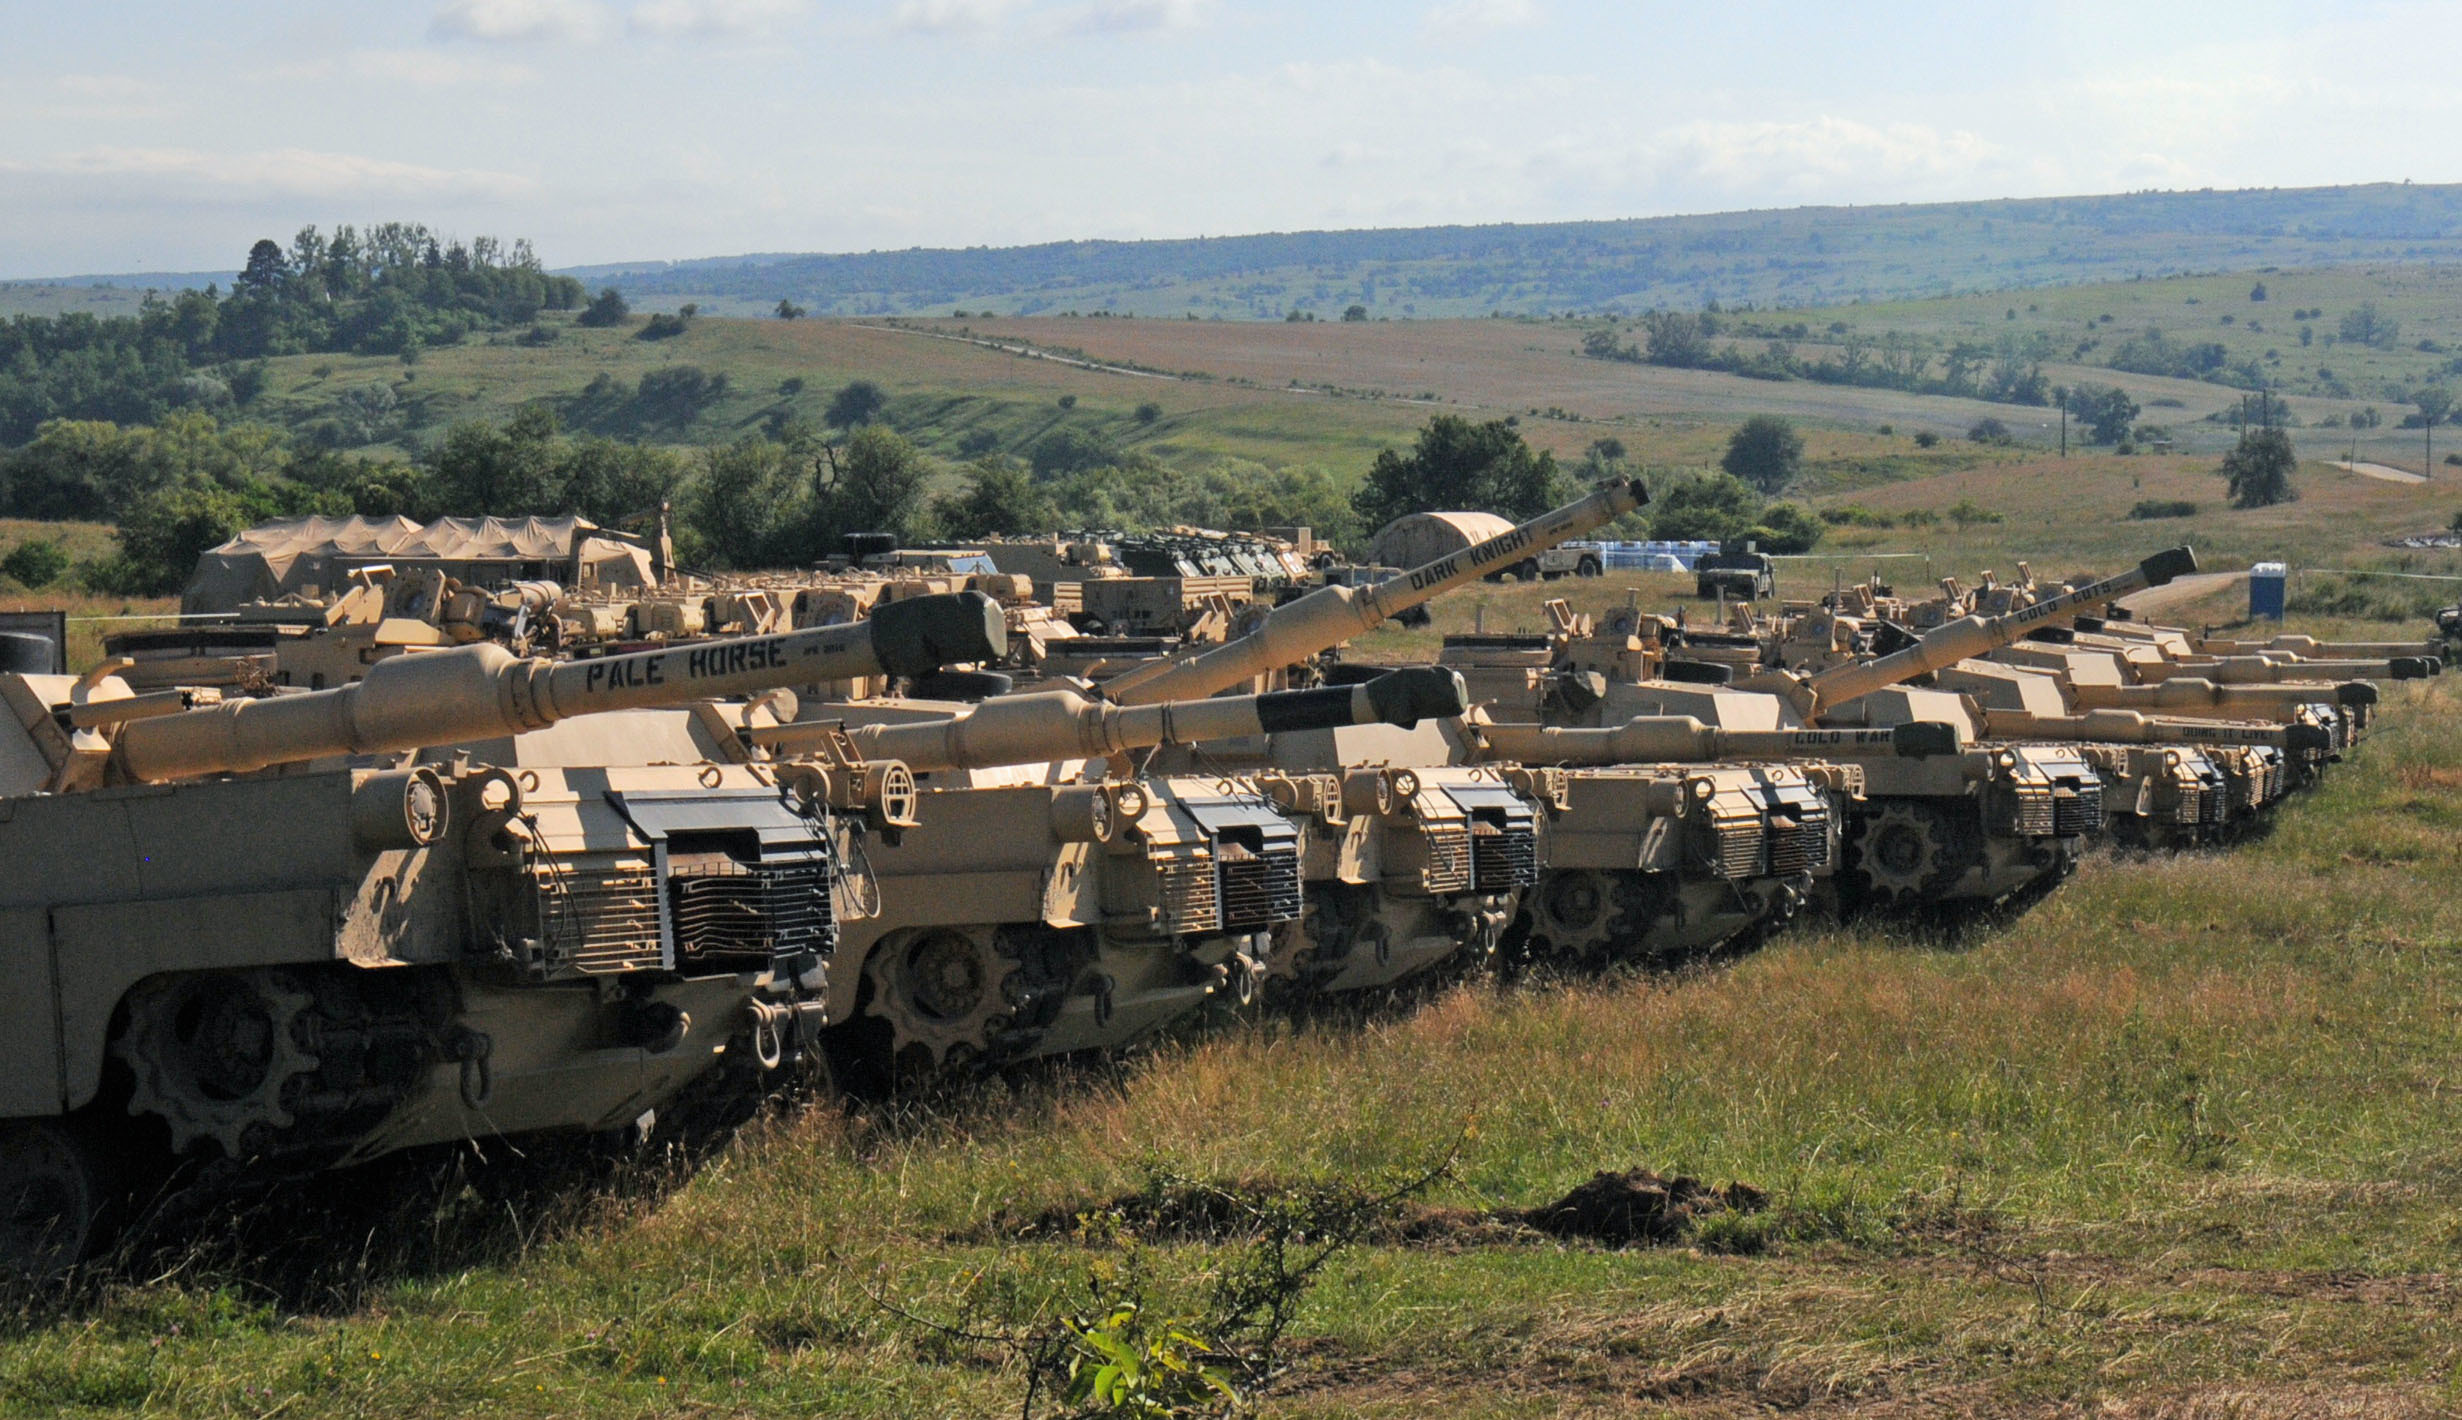 CINCU, Romania – Tanks belonging to the 116th Cavalry Brigade Combat Team (CBCT), Idaho Army National Guard are positioned at the Romanian Land Force Combat Training Center (RLF-CTC) in Cincu, July 7, 2016 prior to the start of Exercise Saber Guardian 2016. The vehicles arrived in Romania on June 19 at the Port of Constanta and were shipped via railhead to Cincu. Saber Guardian is a U.S. Army Europe-led exercise, in the spirit of Partnership for Peace. It is designed to promote regional stability and security, while strengthening partnership capacity, and fostering trust while improving interoperability between Romania, the U.S., NATO and Partnership for Peace member nations. The 116th CBCT is one of the U.S. units participating in the exercise, which will also include forces from 11 different countries.